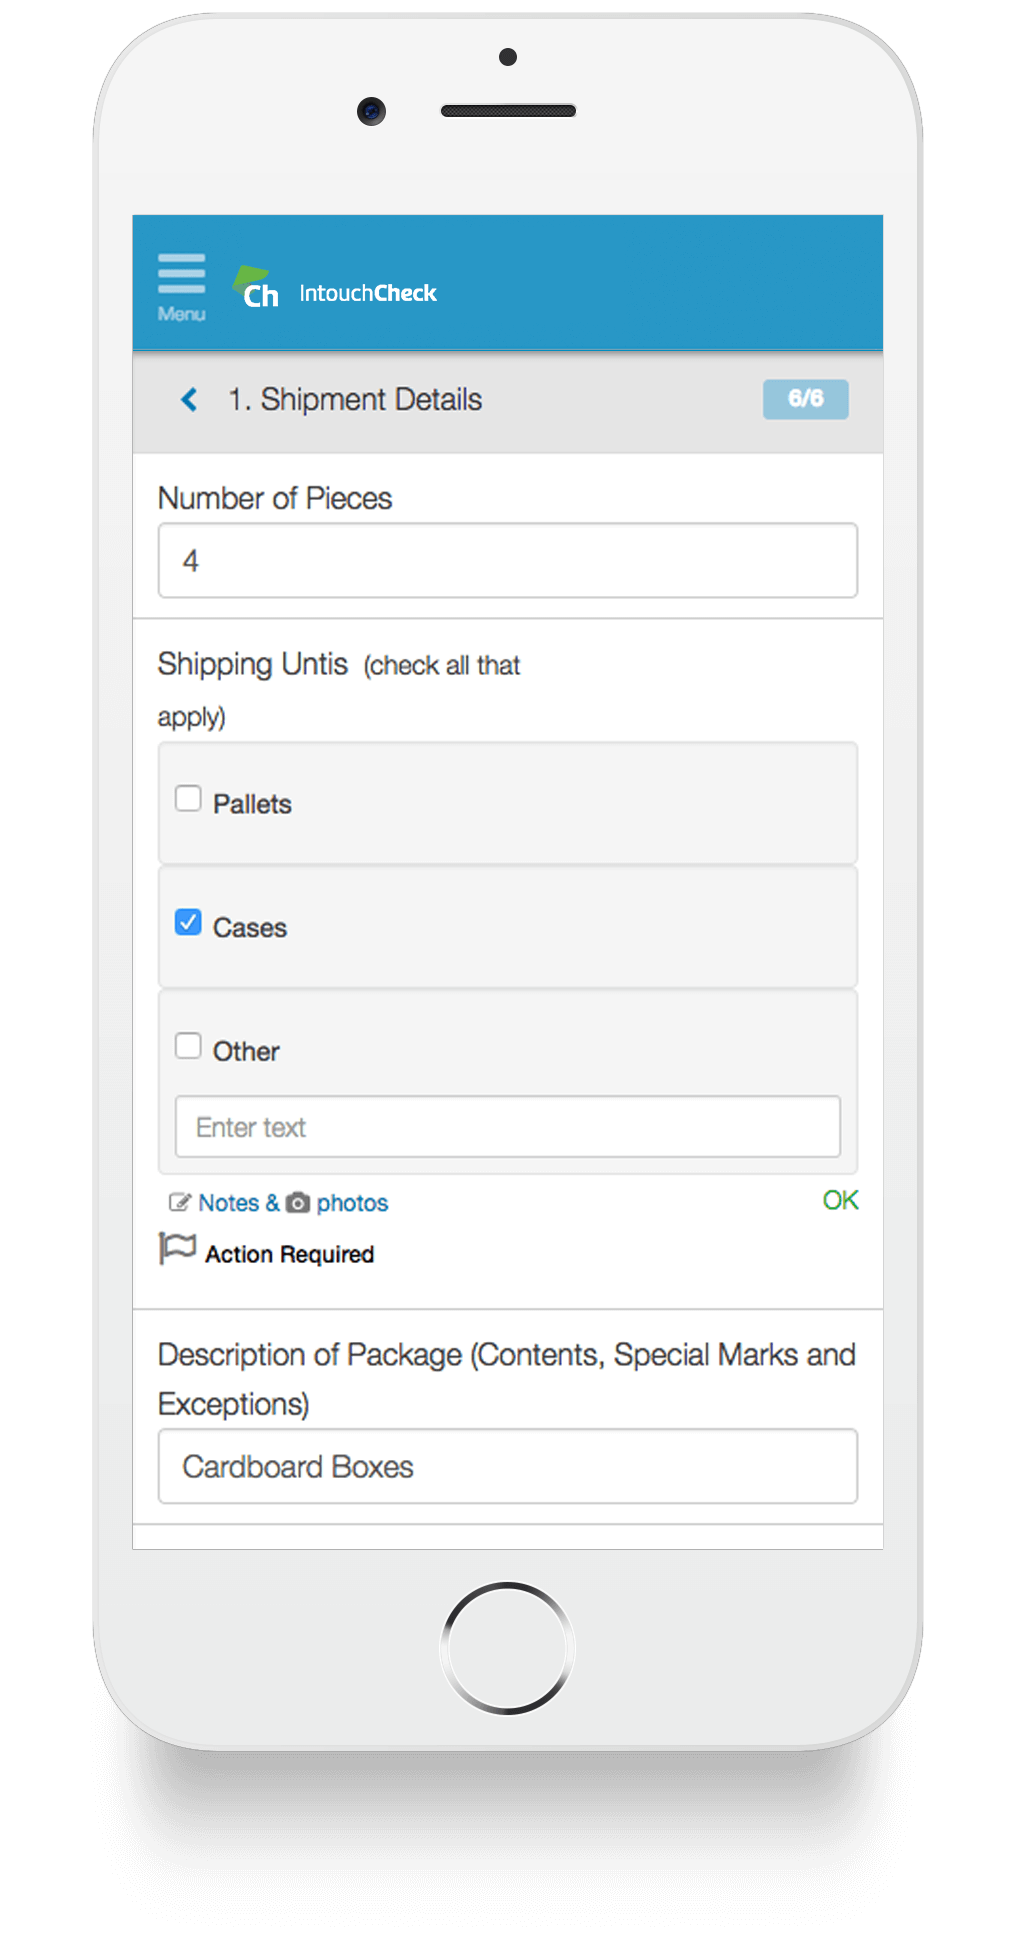 freight-pick-up-confirmation-form.png